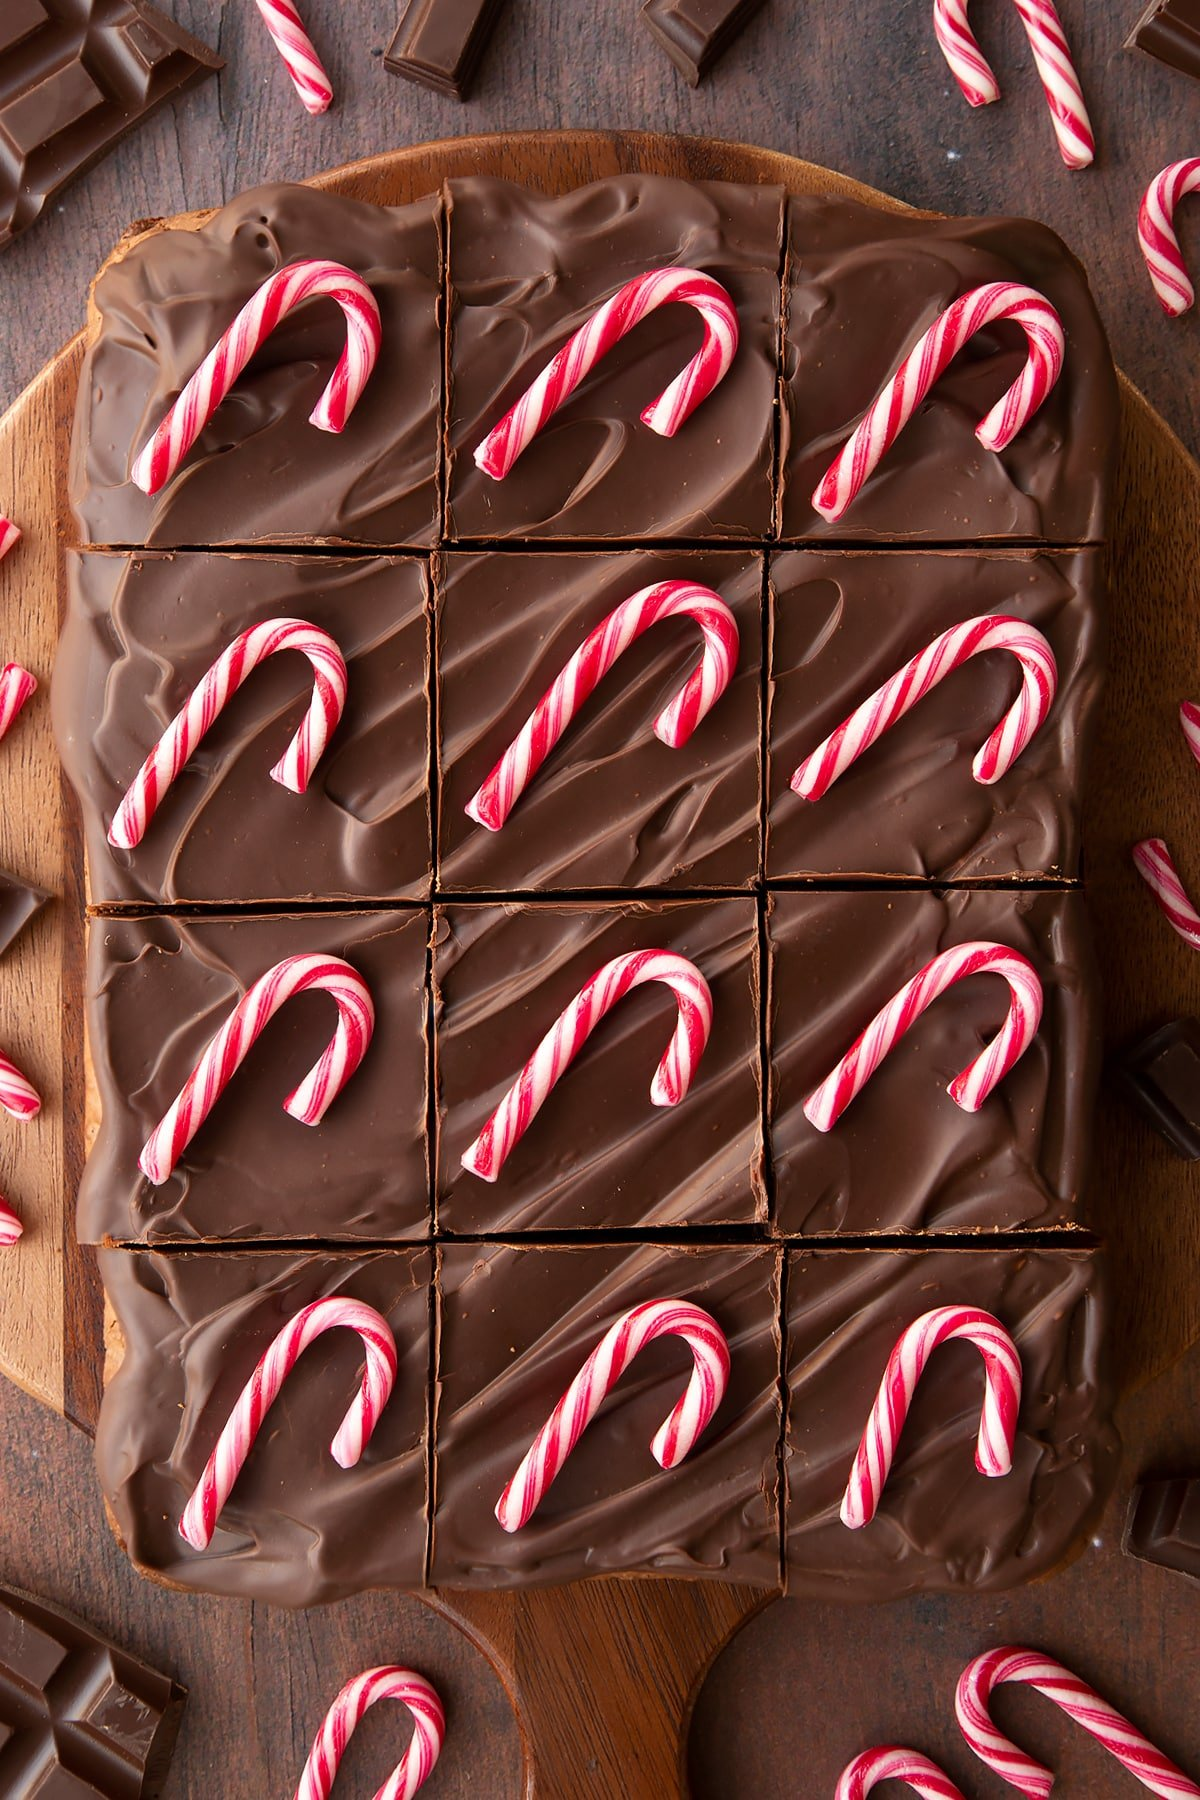 Candy cane brownies on a board, cut into 12 pieces. Each piece has been topped with a candy cane.